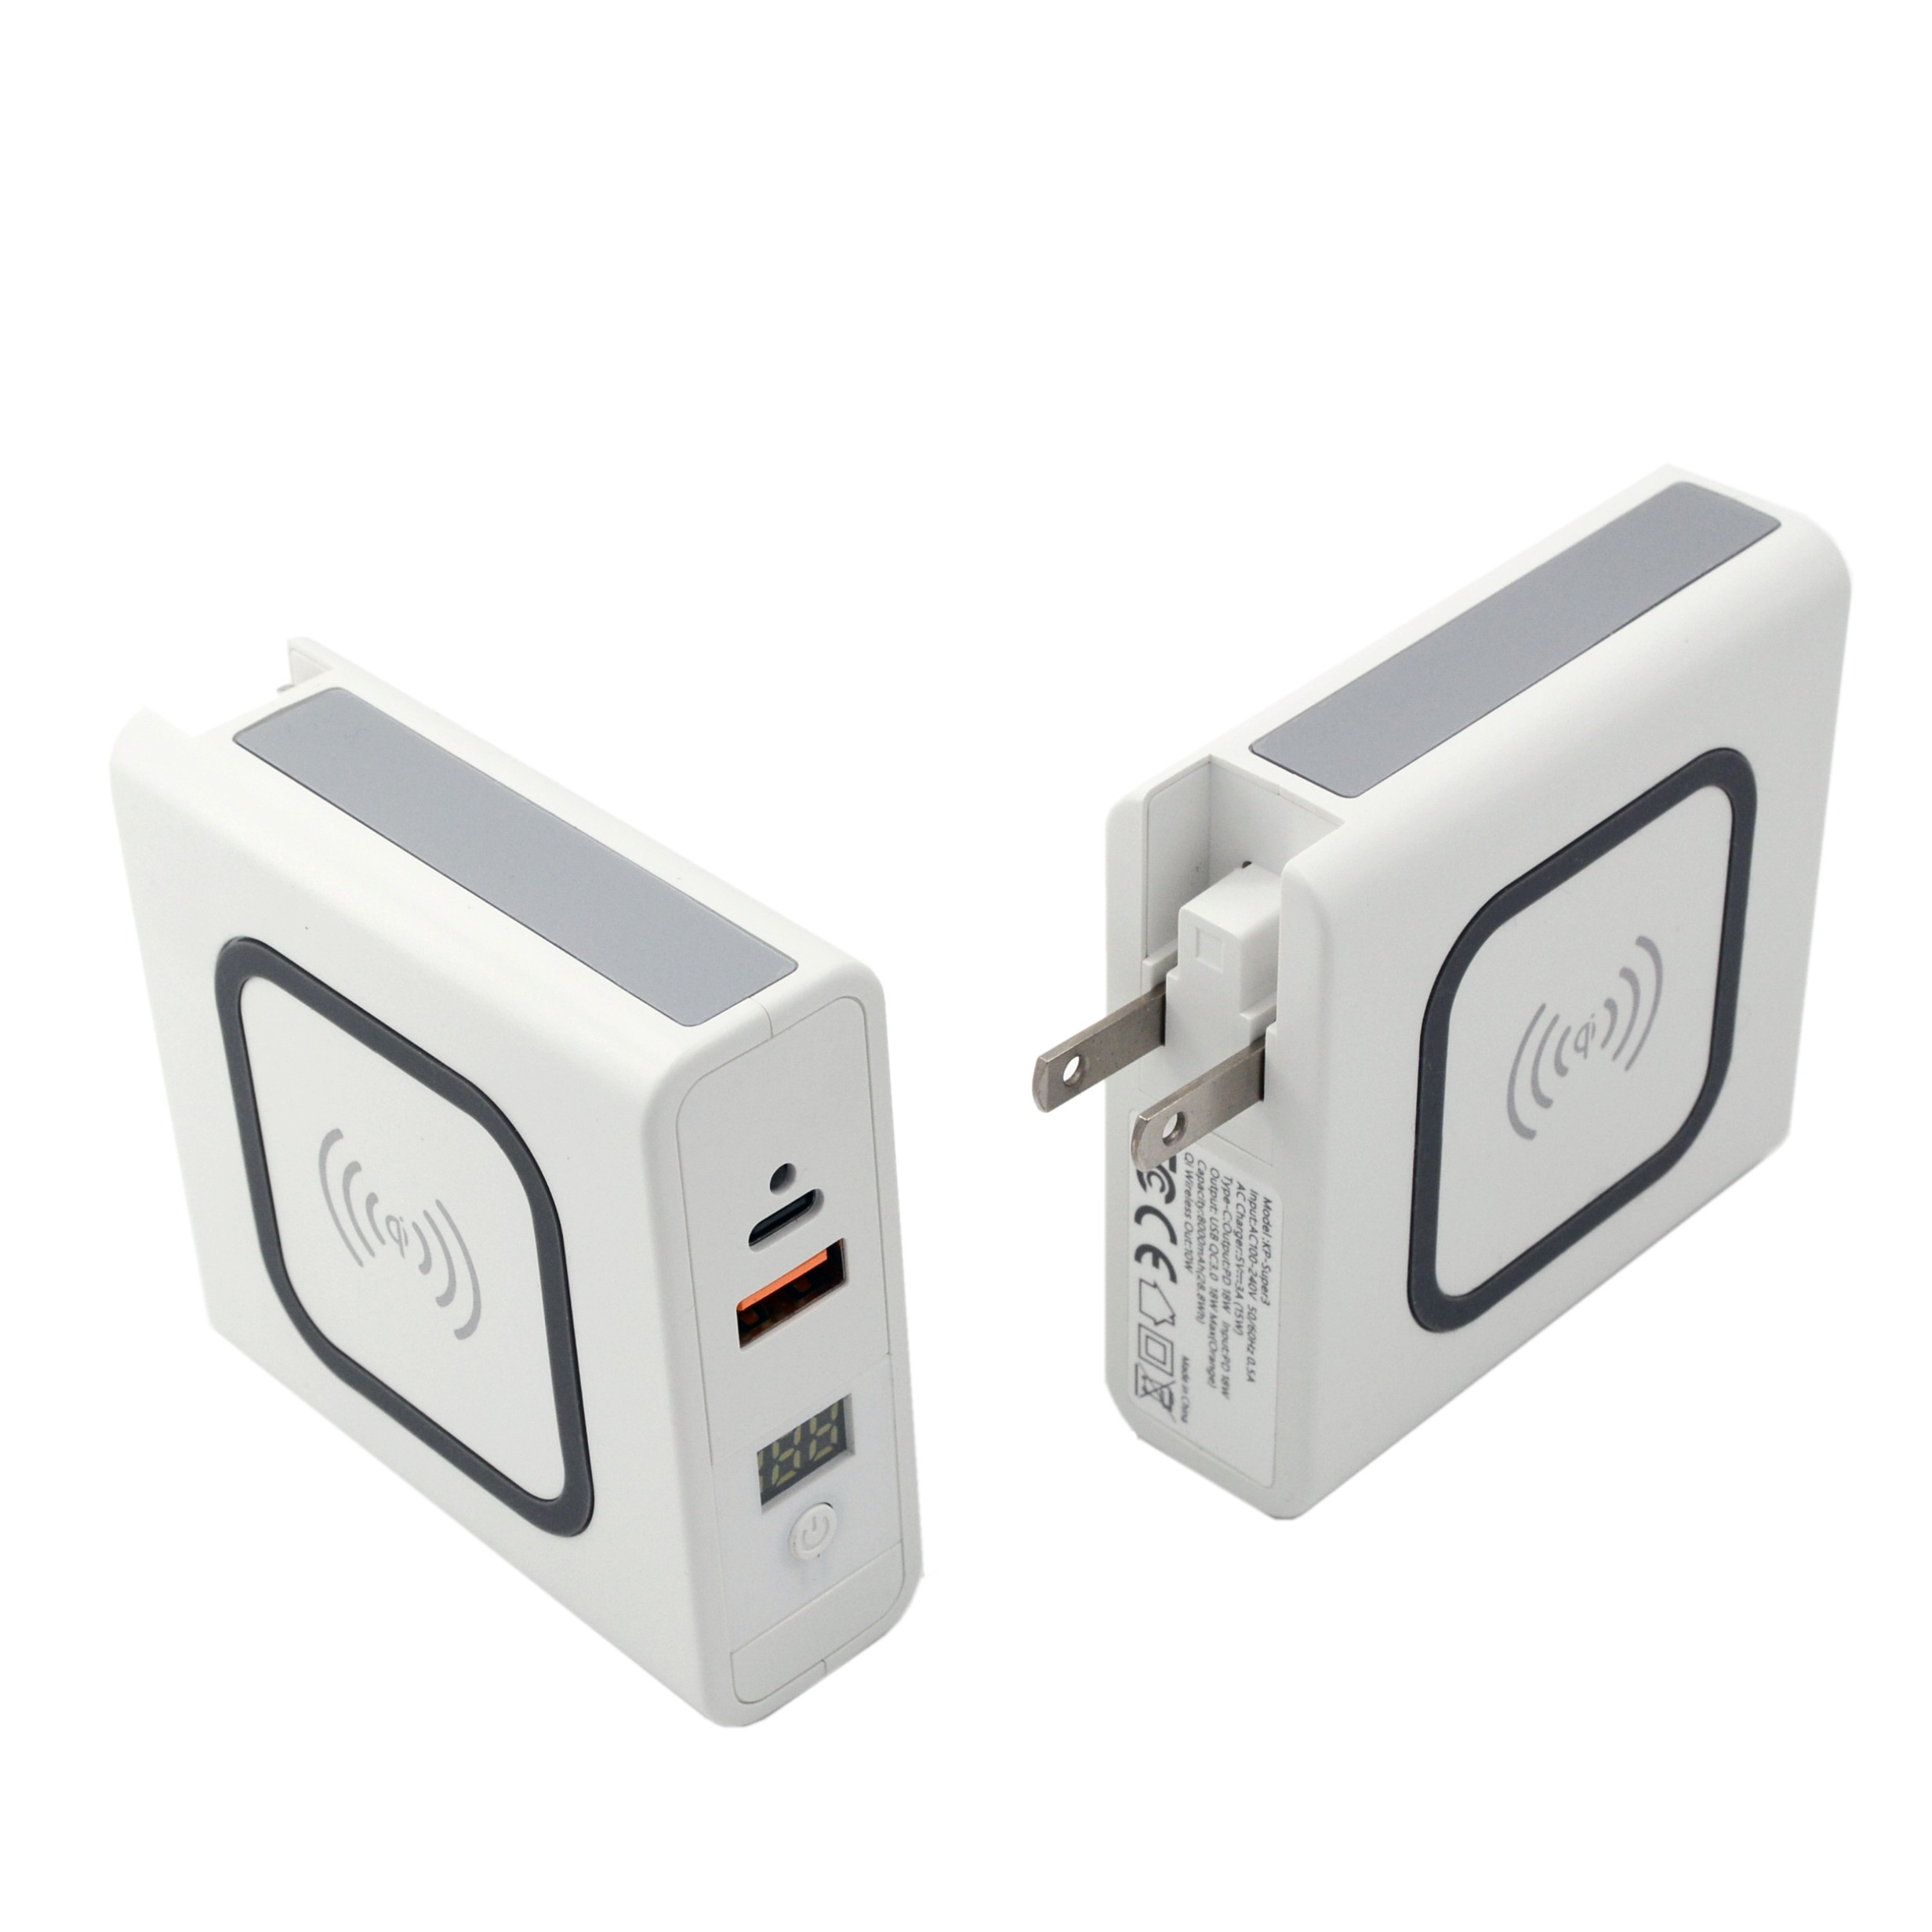 Multi USB Tablet PC 10W Power Bank With Built In Wall Plug